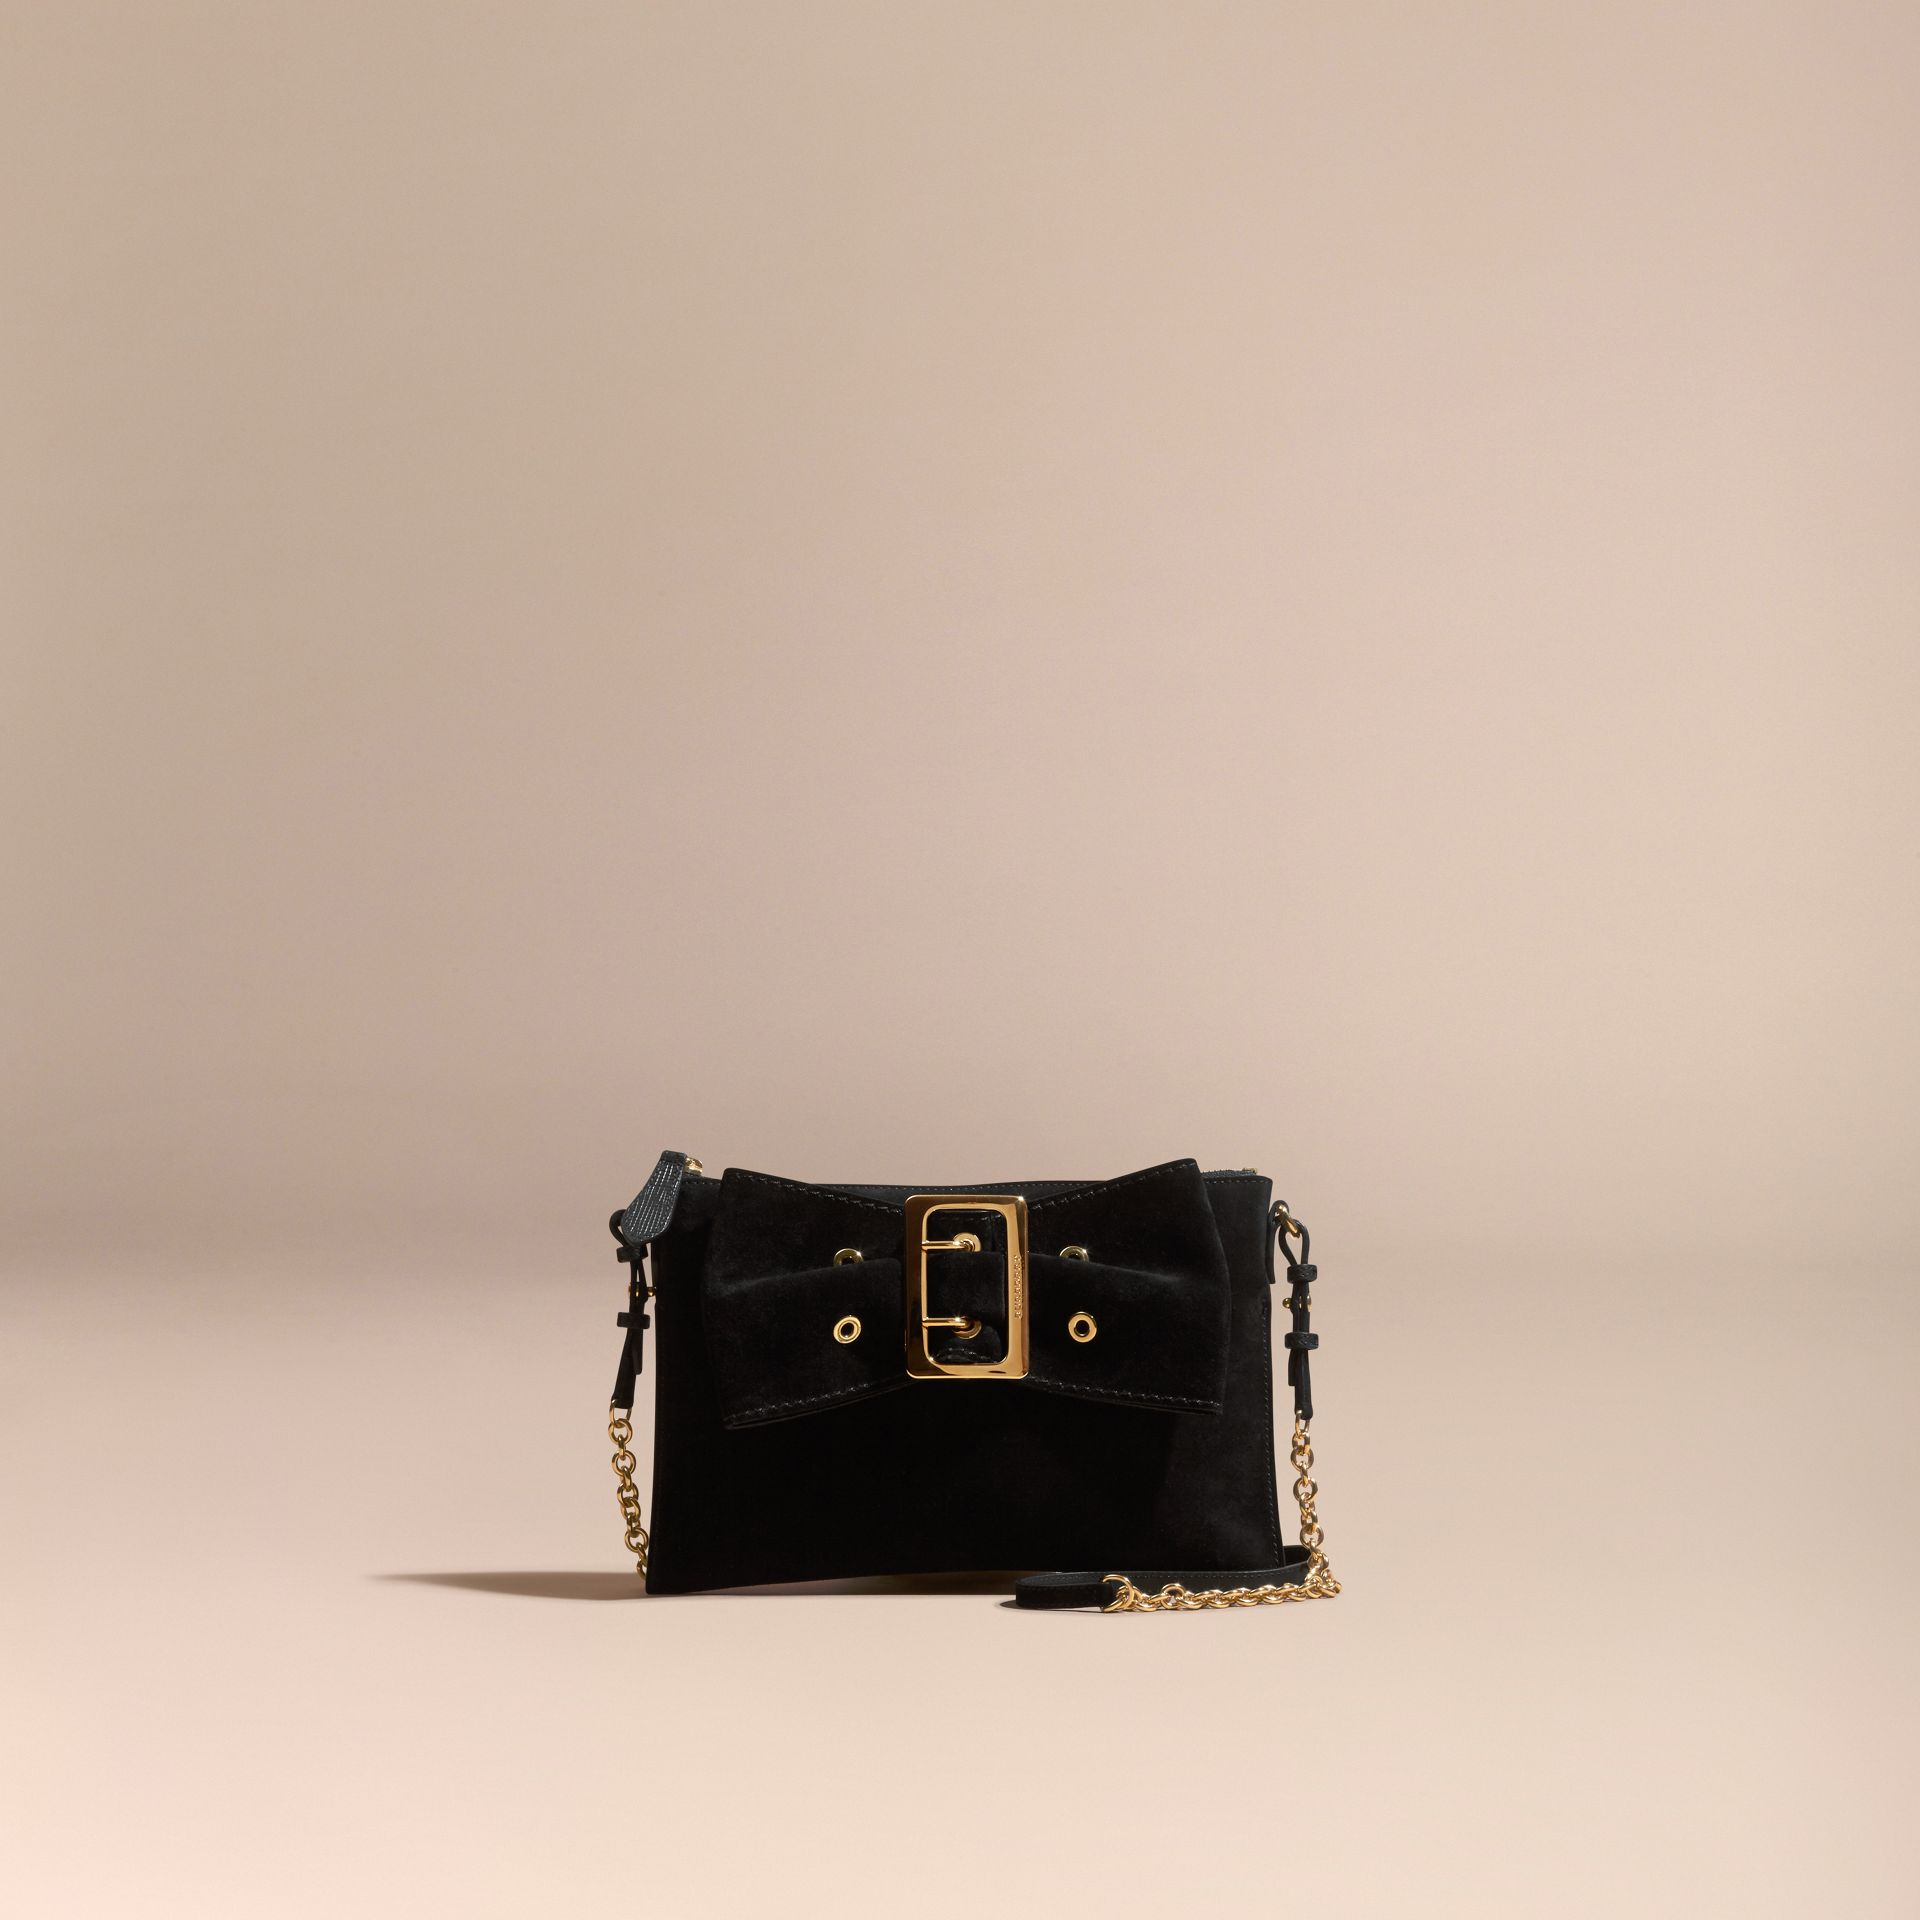 Black Suede Clutch Bag with Buckled Bow Detail Black - gallery image 9